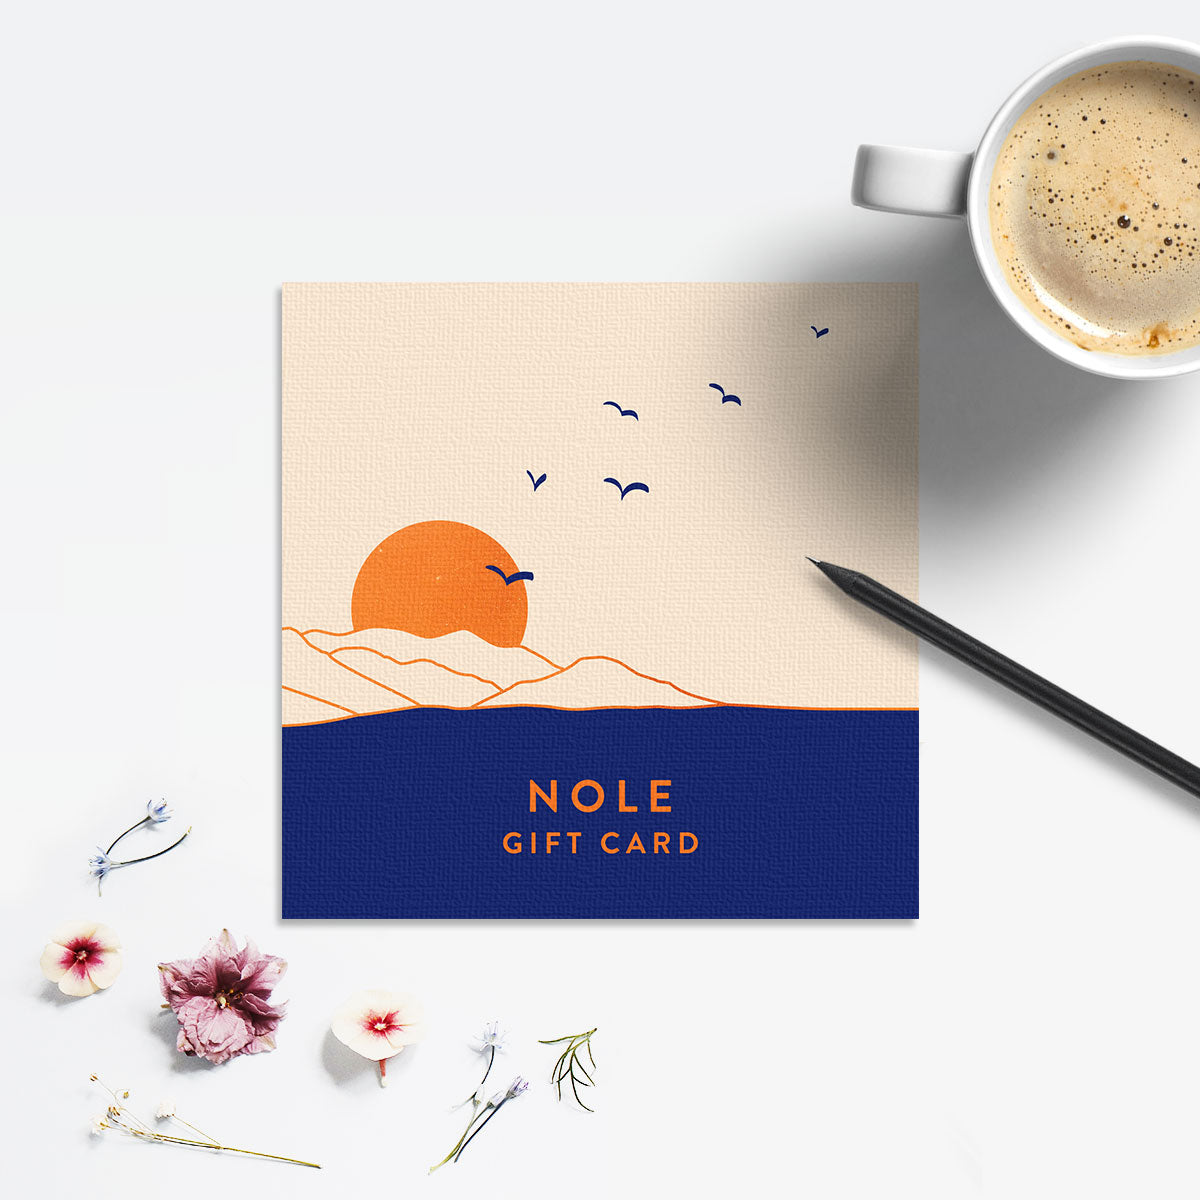 Gift Card - Nole Creative